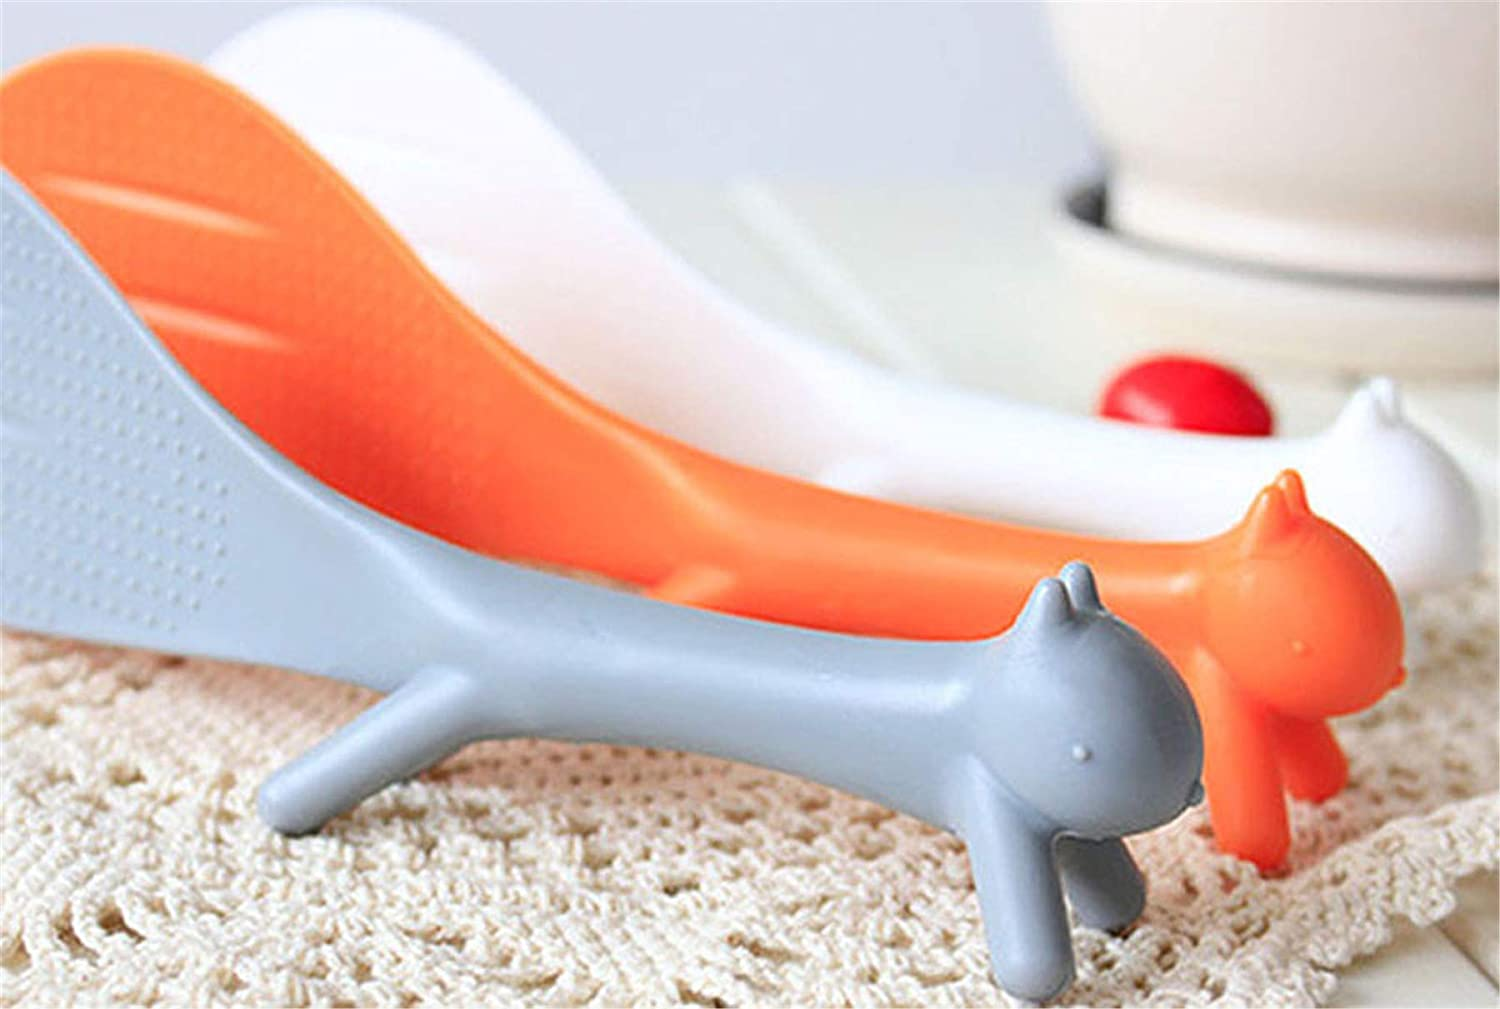 Wffo Creative Lovely Kitchen Supplie Squirrel Shaped Non Stick Rice Paddle